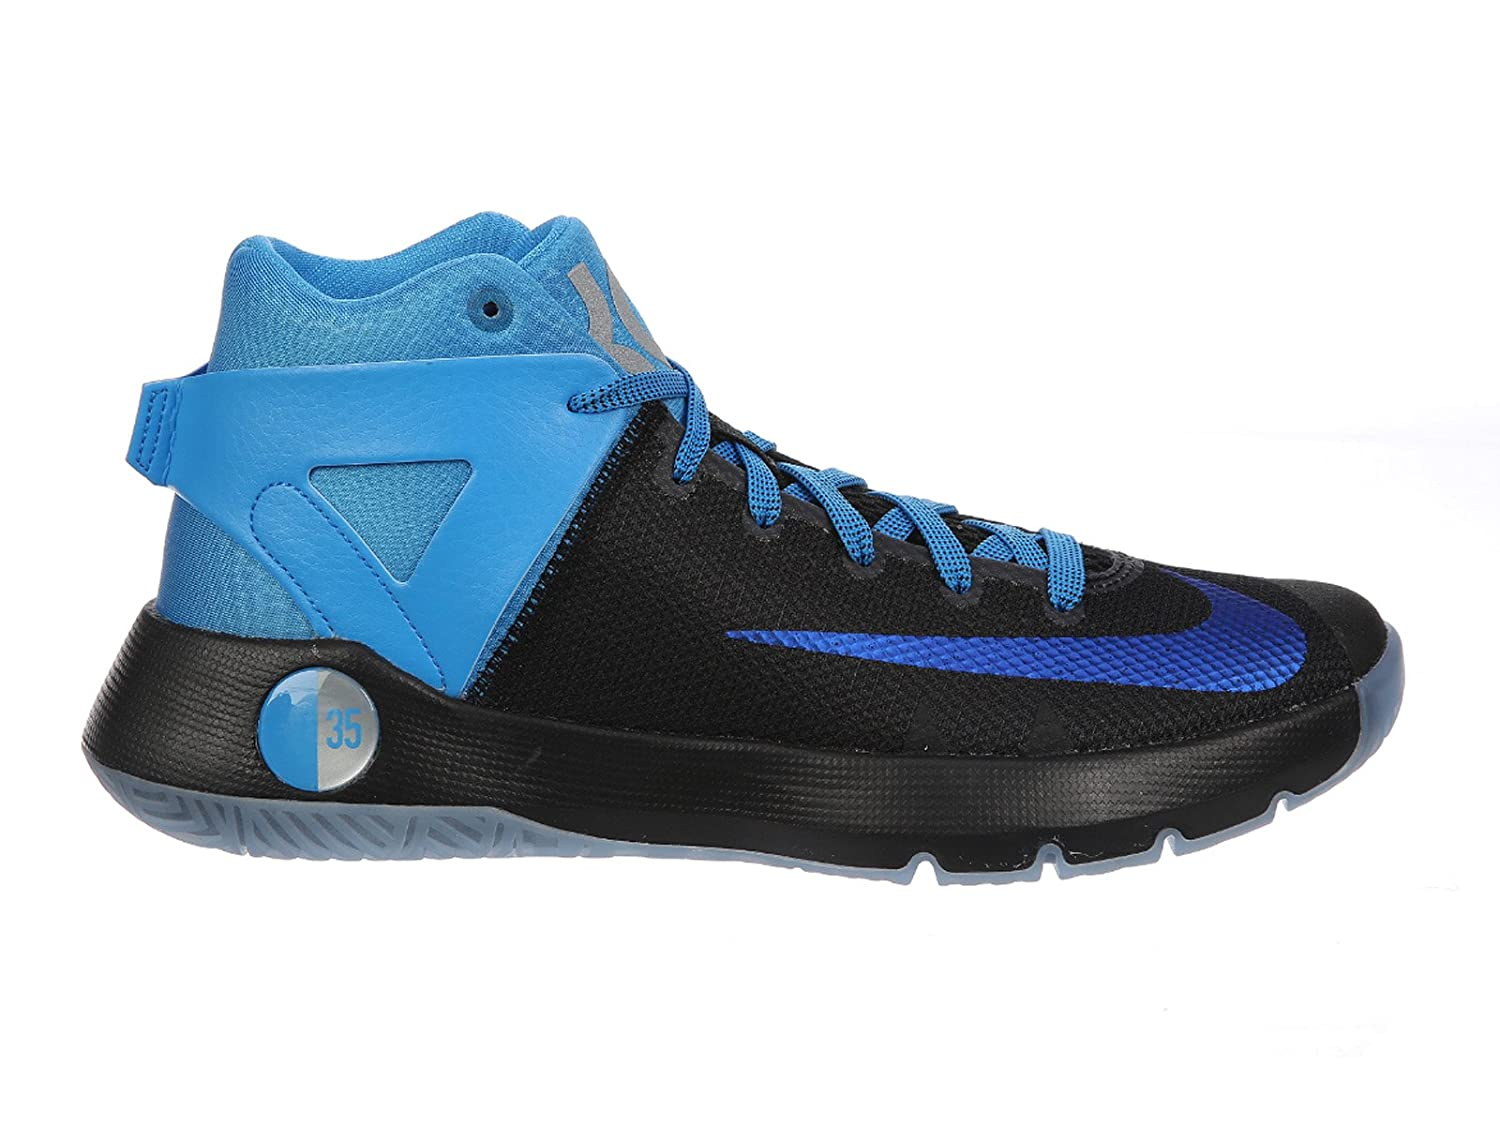 new styles d1e57 c8364 Amazon.com   Nike Men s KD Trey 5 IV PRM Kevin Durant Basketball Shoes  844589 040 Black Blue Glow (10 D(M) US)   Basketball